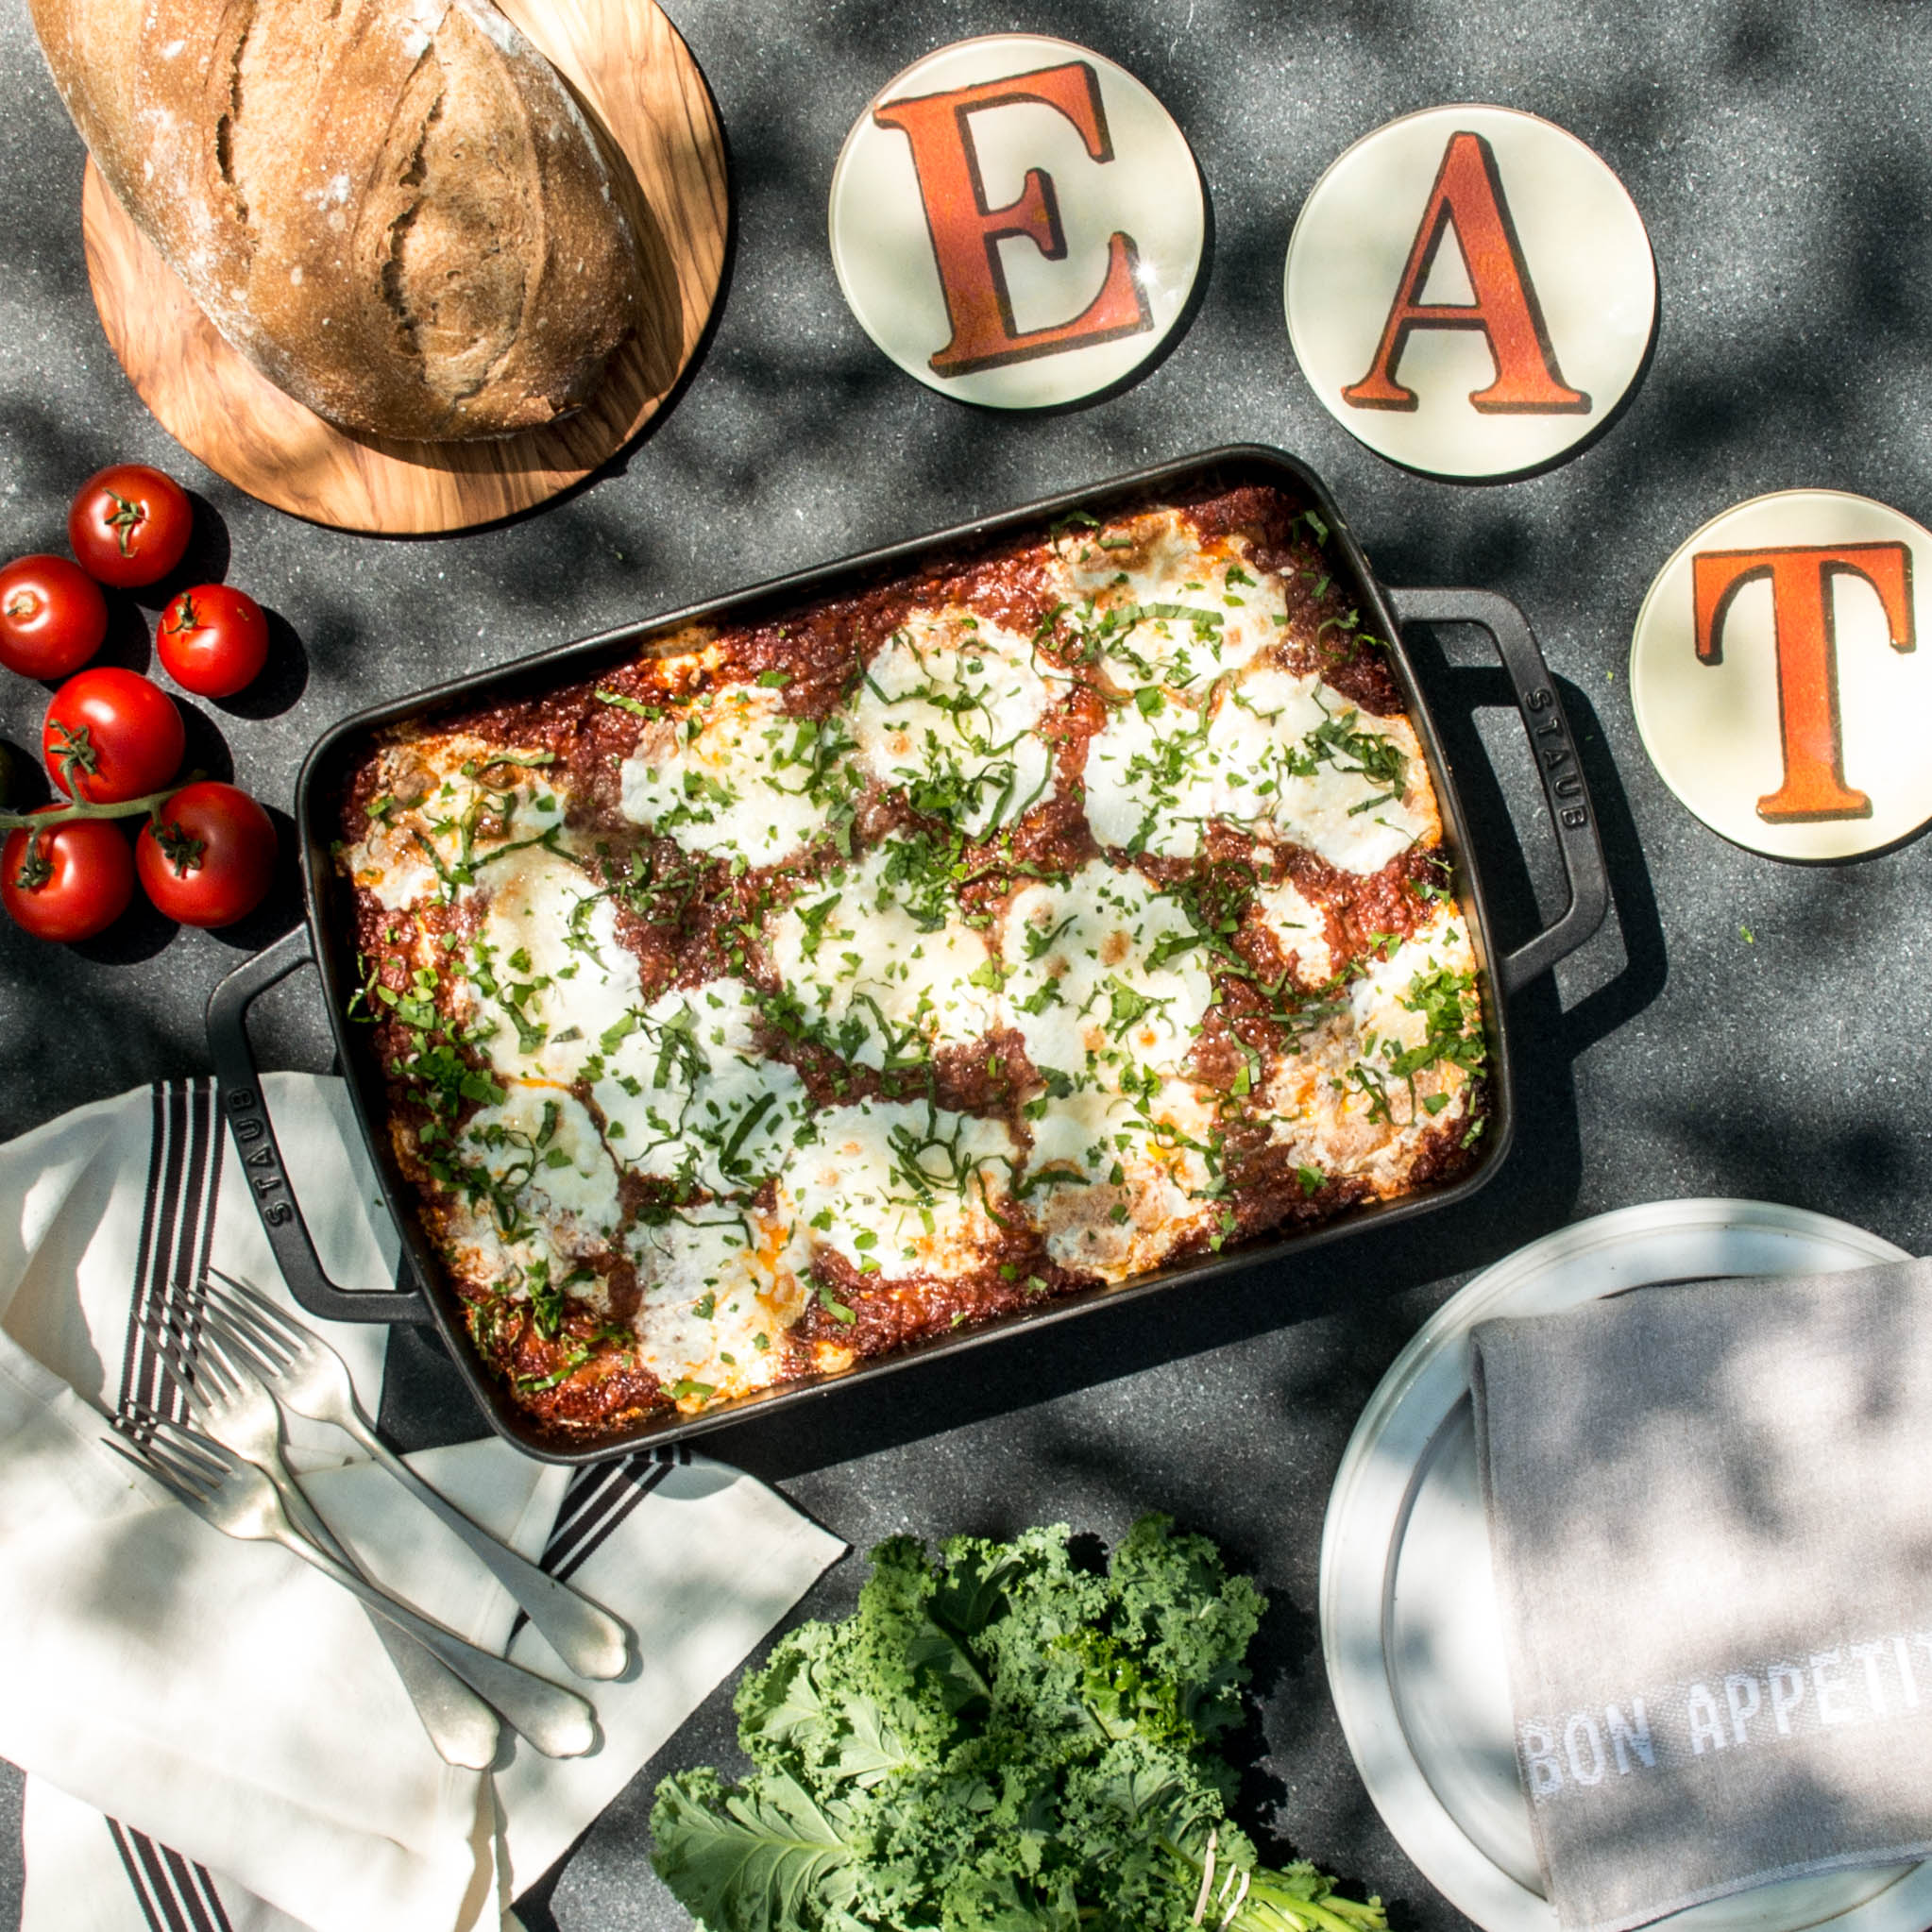 - This is the spoil your taste buds silly lasagna, with rich complex flavor that comes straight from mamma's kitchen.